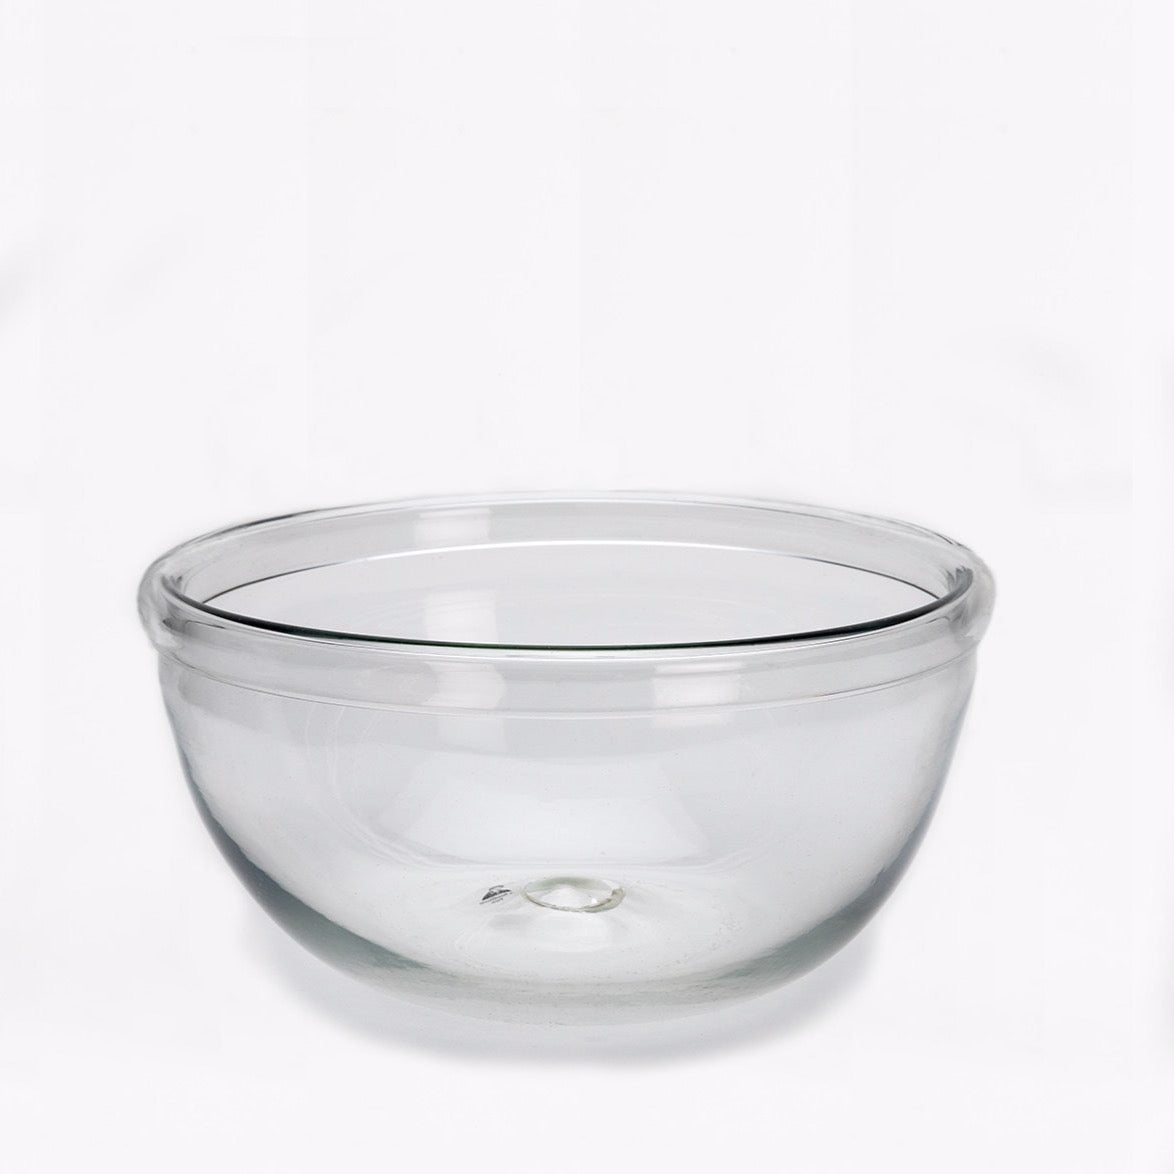 La Soufflerie glass serving bowl